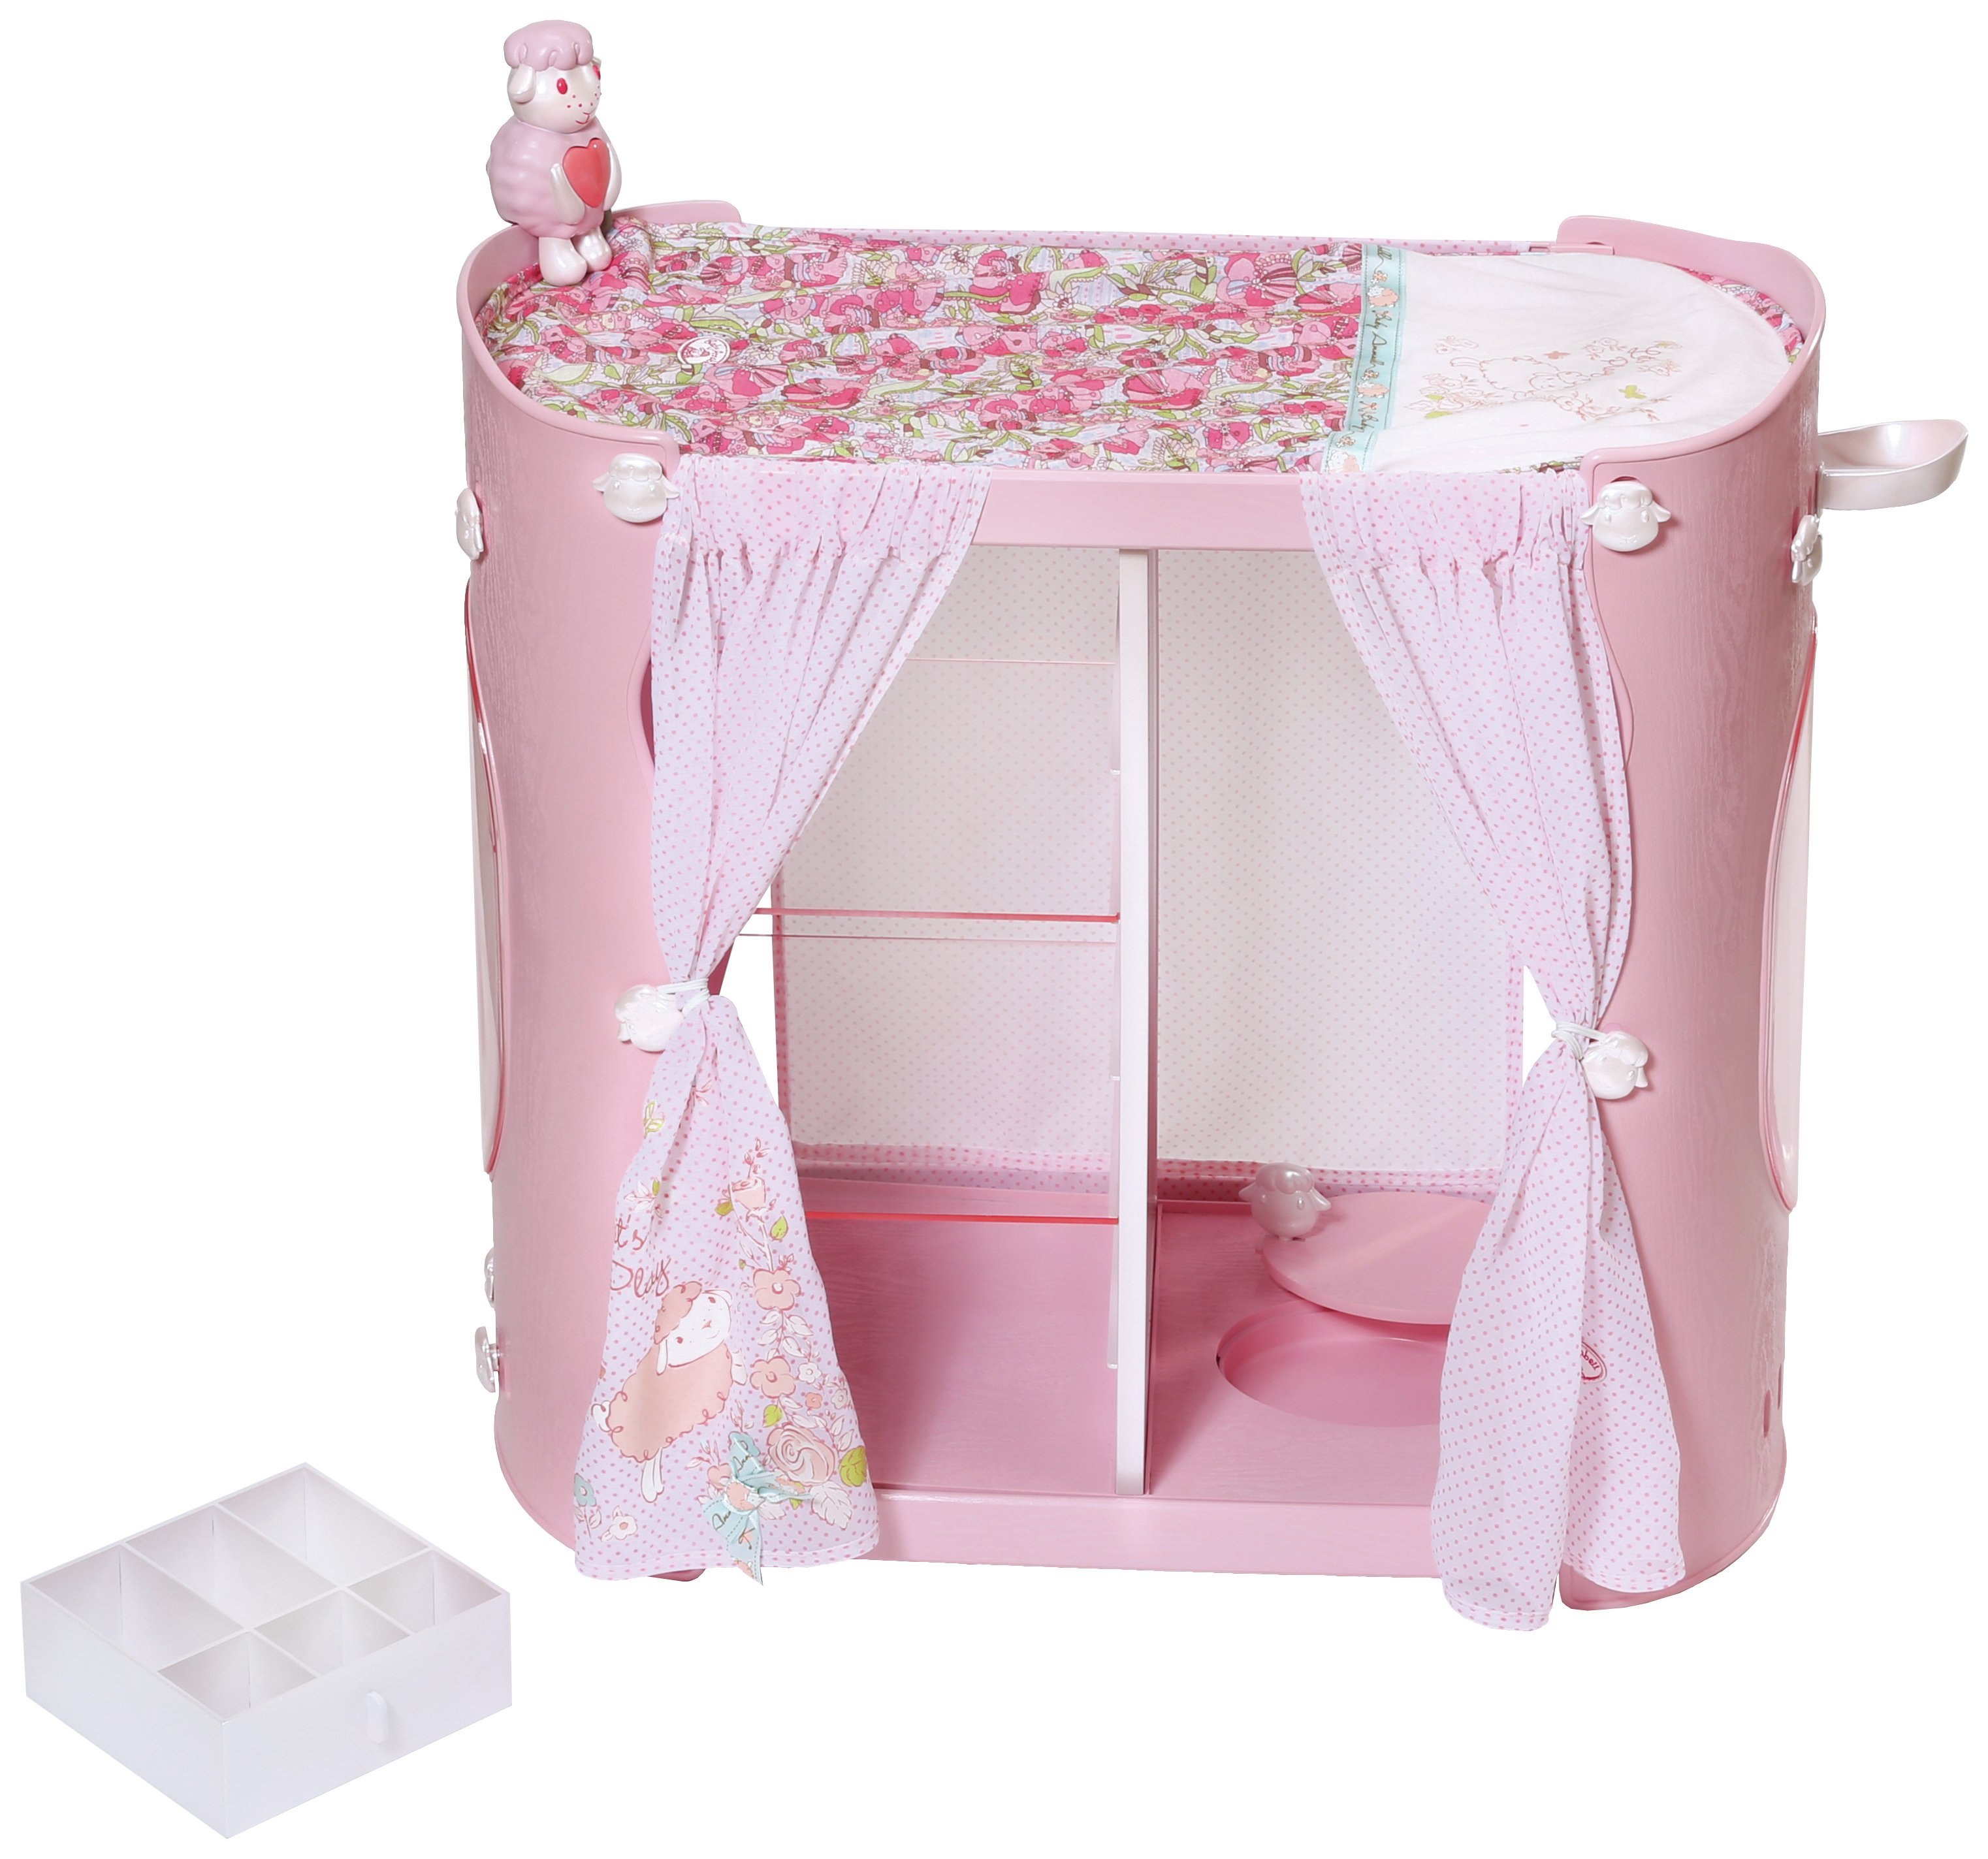 Image of Baby Annabell 2-in-1 Baby Unit Wardrobe/Changing Table